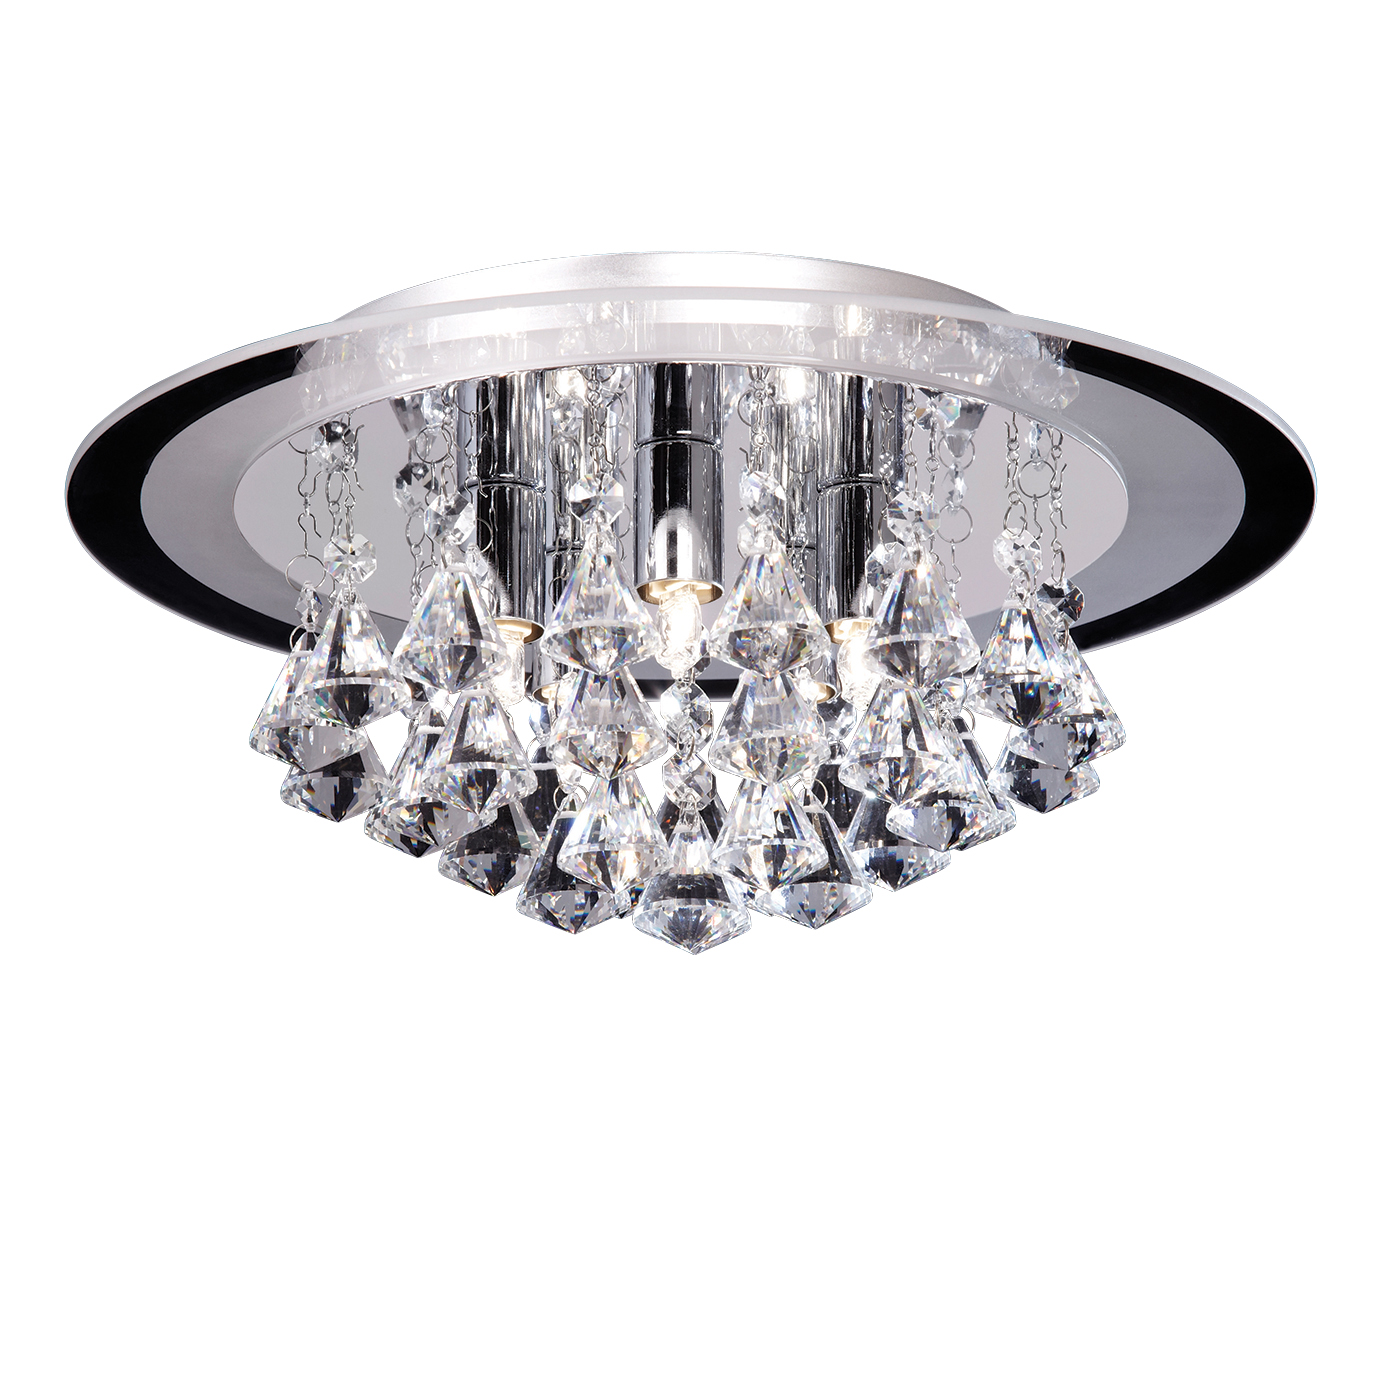 Endon Renner flush ceiling light 5x 33W Clear crystal (k9) drops & chrome effect Thumbnail 1